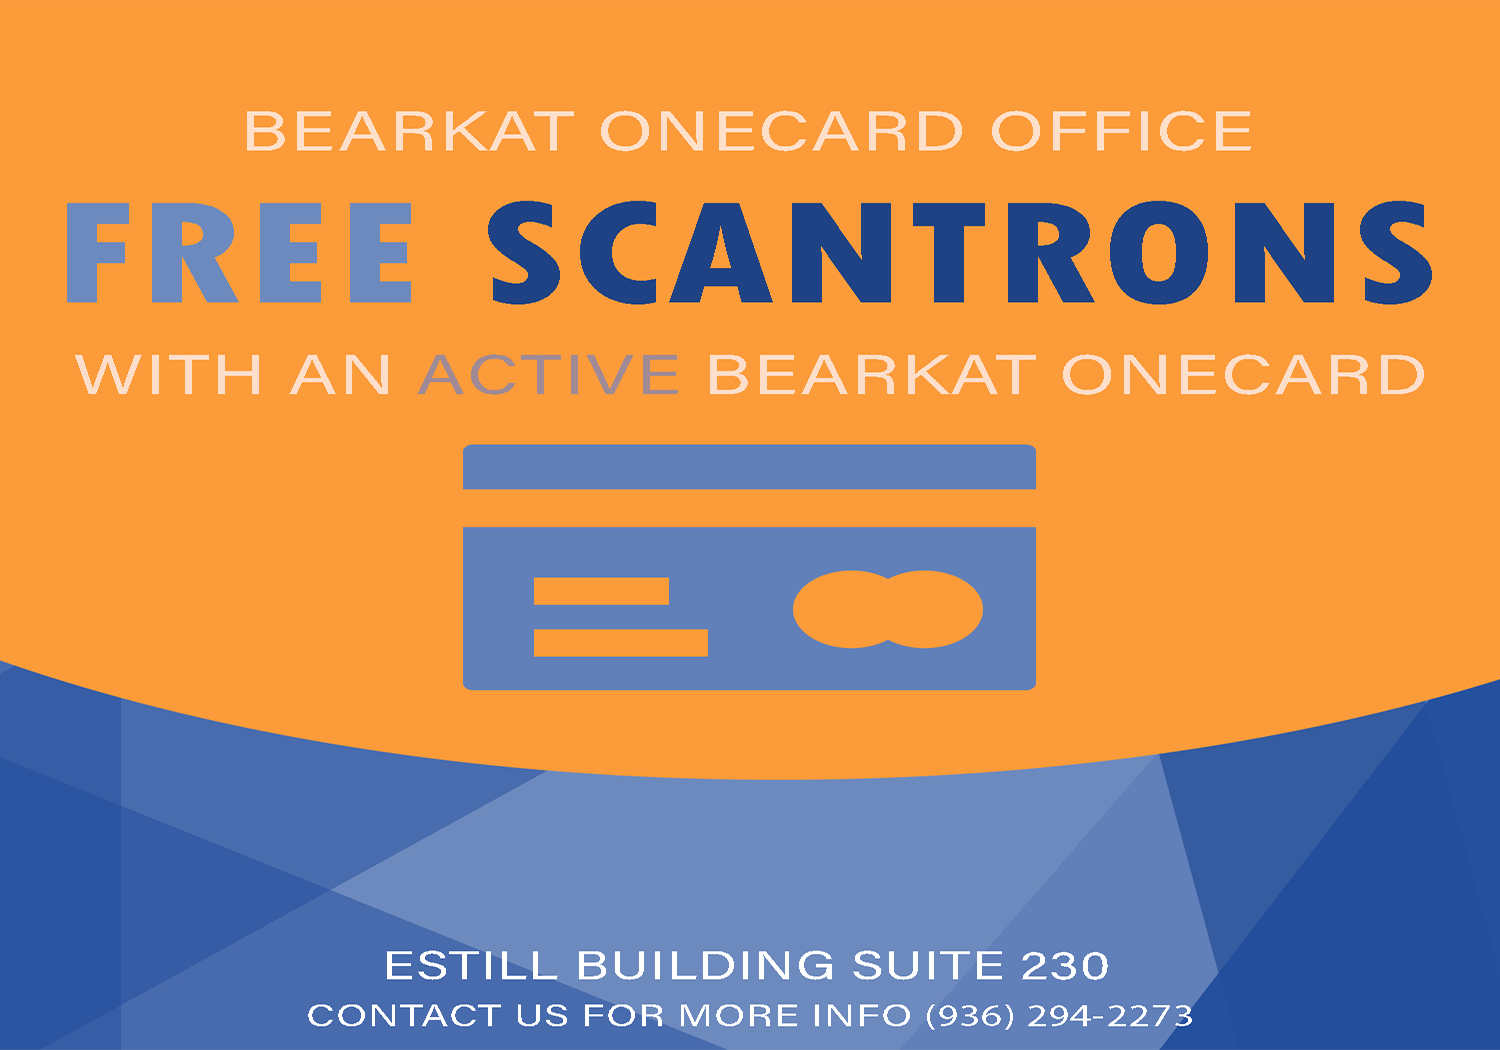 Free Scantrons with an active Bearkat OneCard.